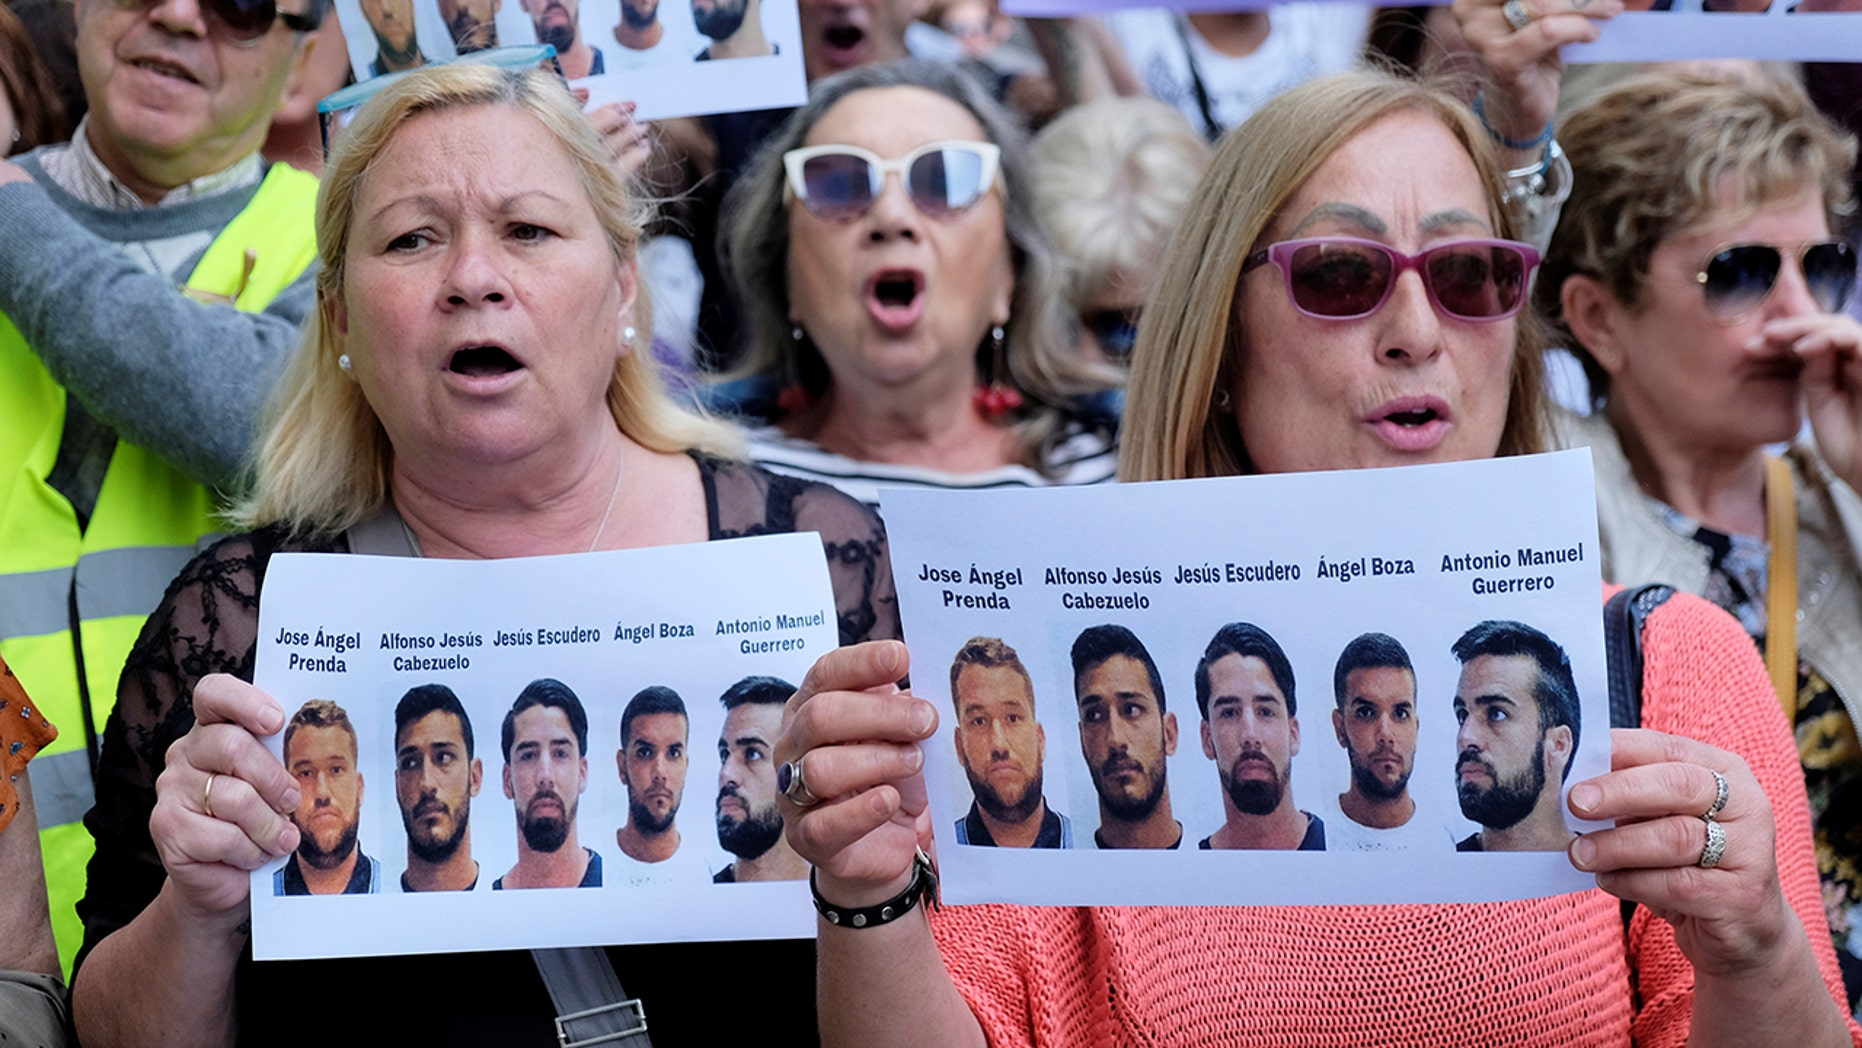 People shout slogans while holding signs during a protest outside the City of Justice, after a Spanish court on Thursday sentenced five men accused of the group rape of an 18-year-old woman at the 2016 San Fermin bull-running festival each to nine years in prison for the lesser charge of sexual abuse, in Valencia, Spain April 27, 2018. REUTERS/Heino Kalis? - RC121CBBB710